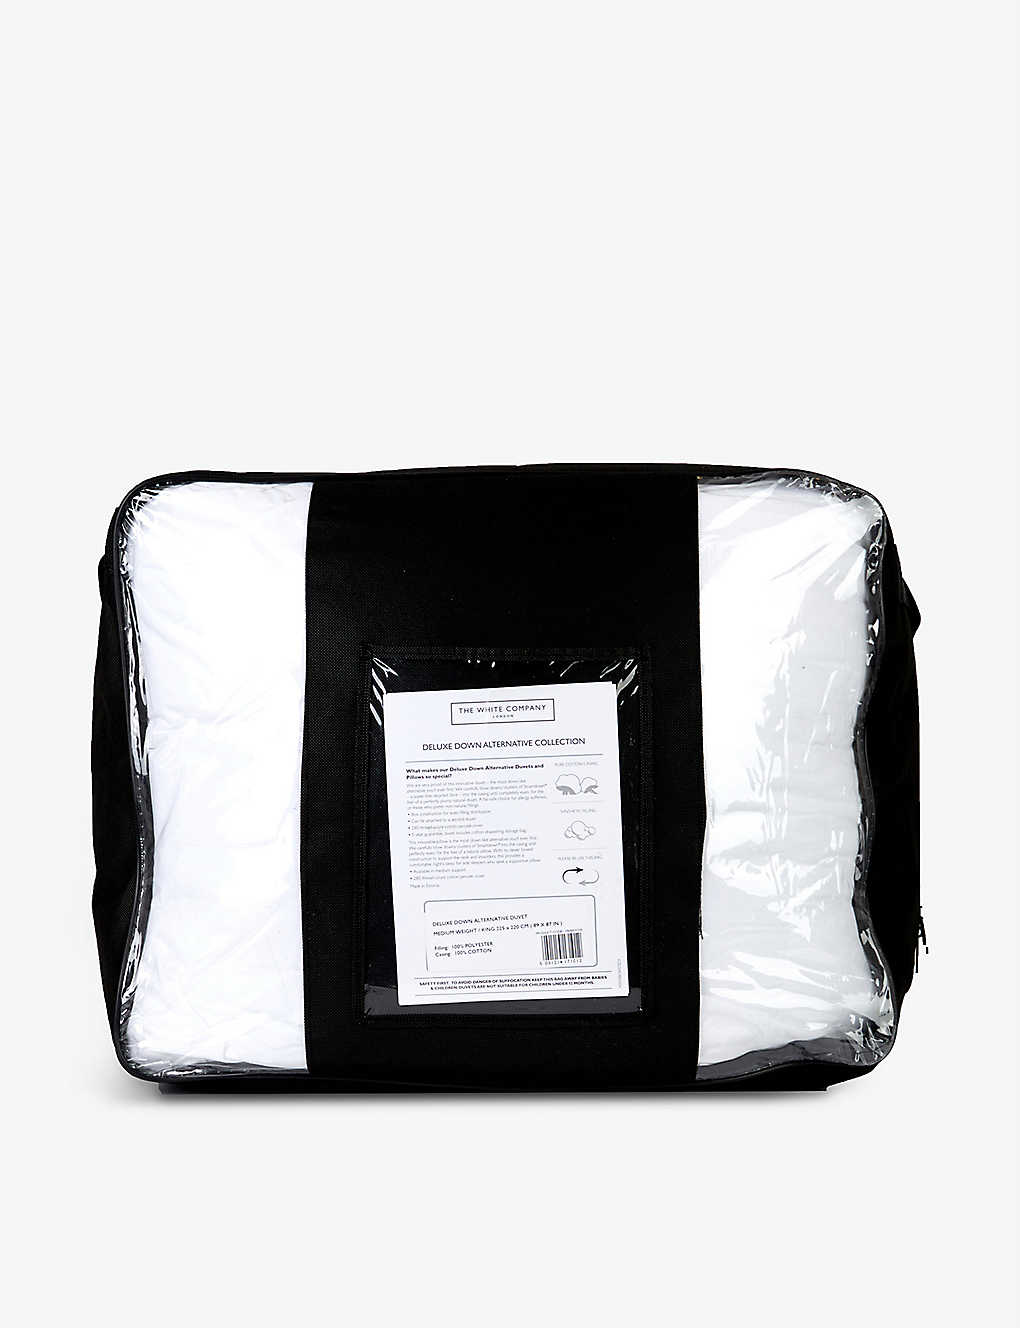 THE WHITE COMPANY: Deluxe Down Alternative king size cotton duvet